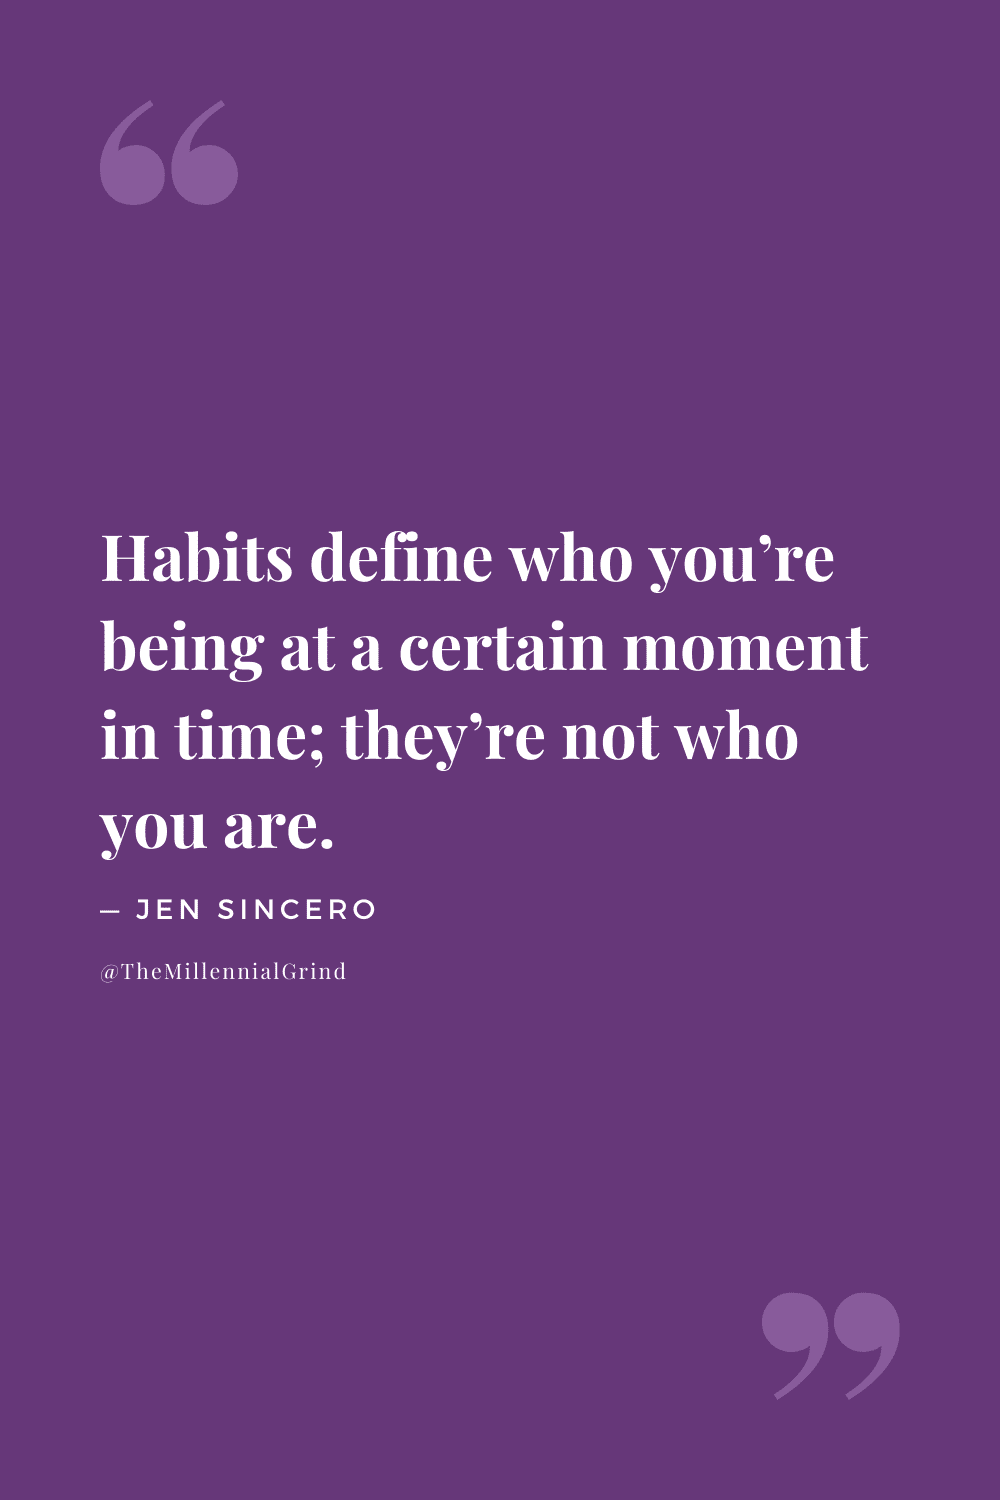 Quotes From Badass Habits by Jen Sincero